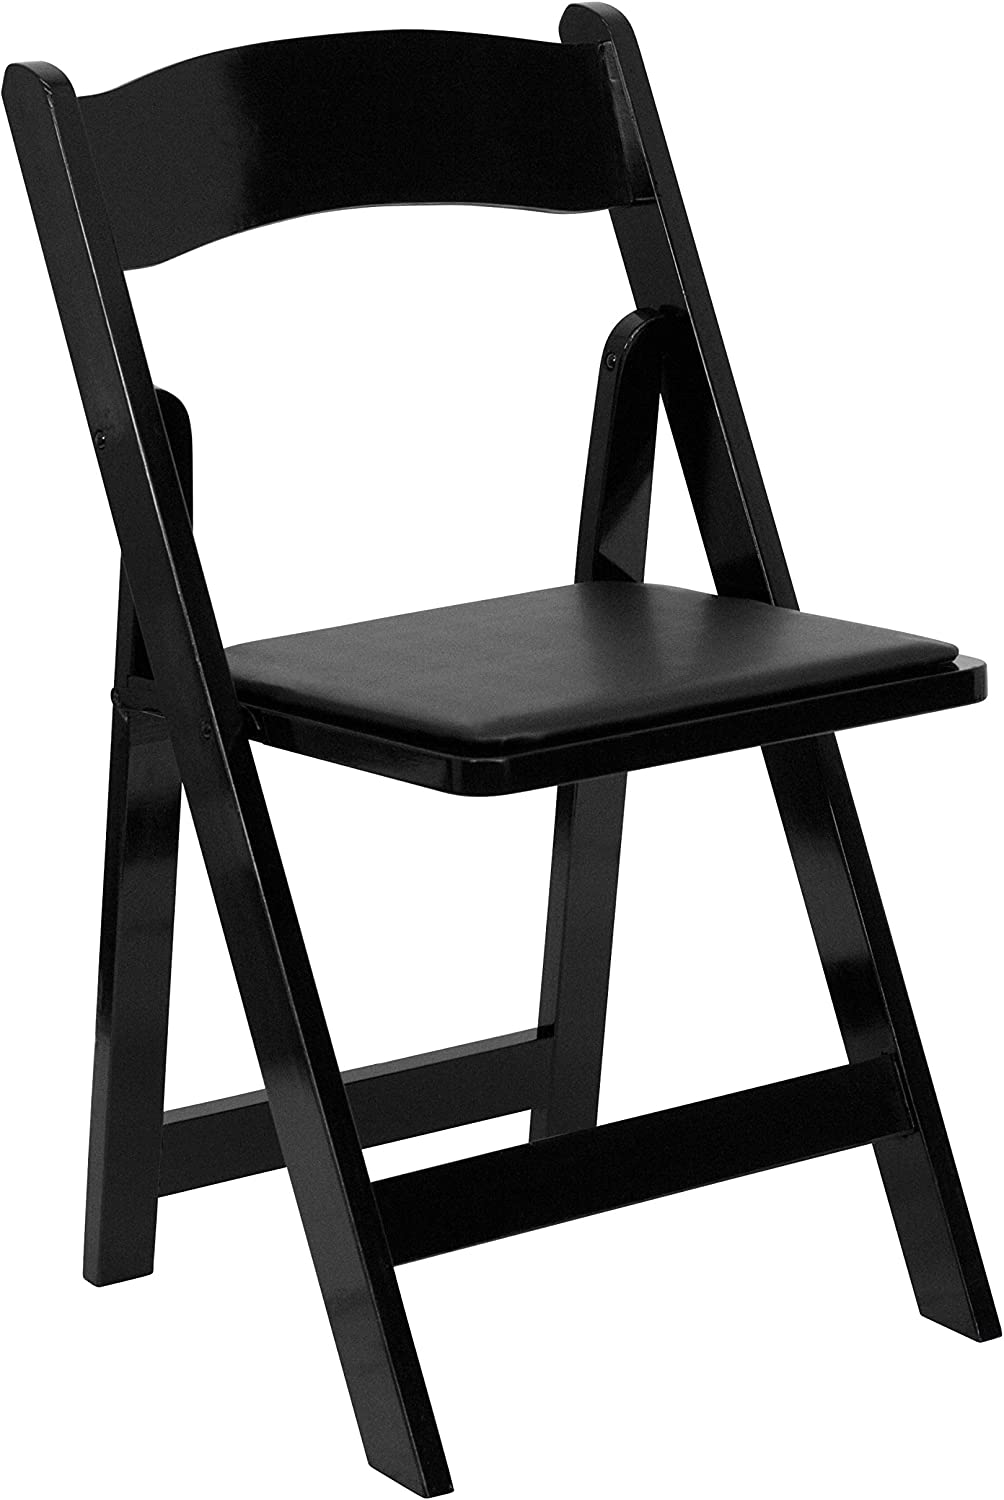 Flash Furniture HERCULES Series Black Wood Folding Chair with Vinyl Padded Seat